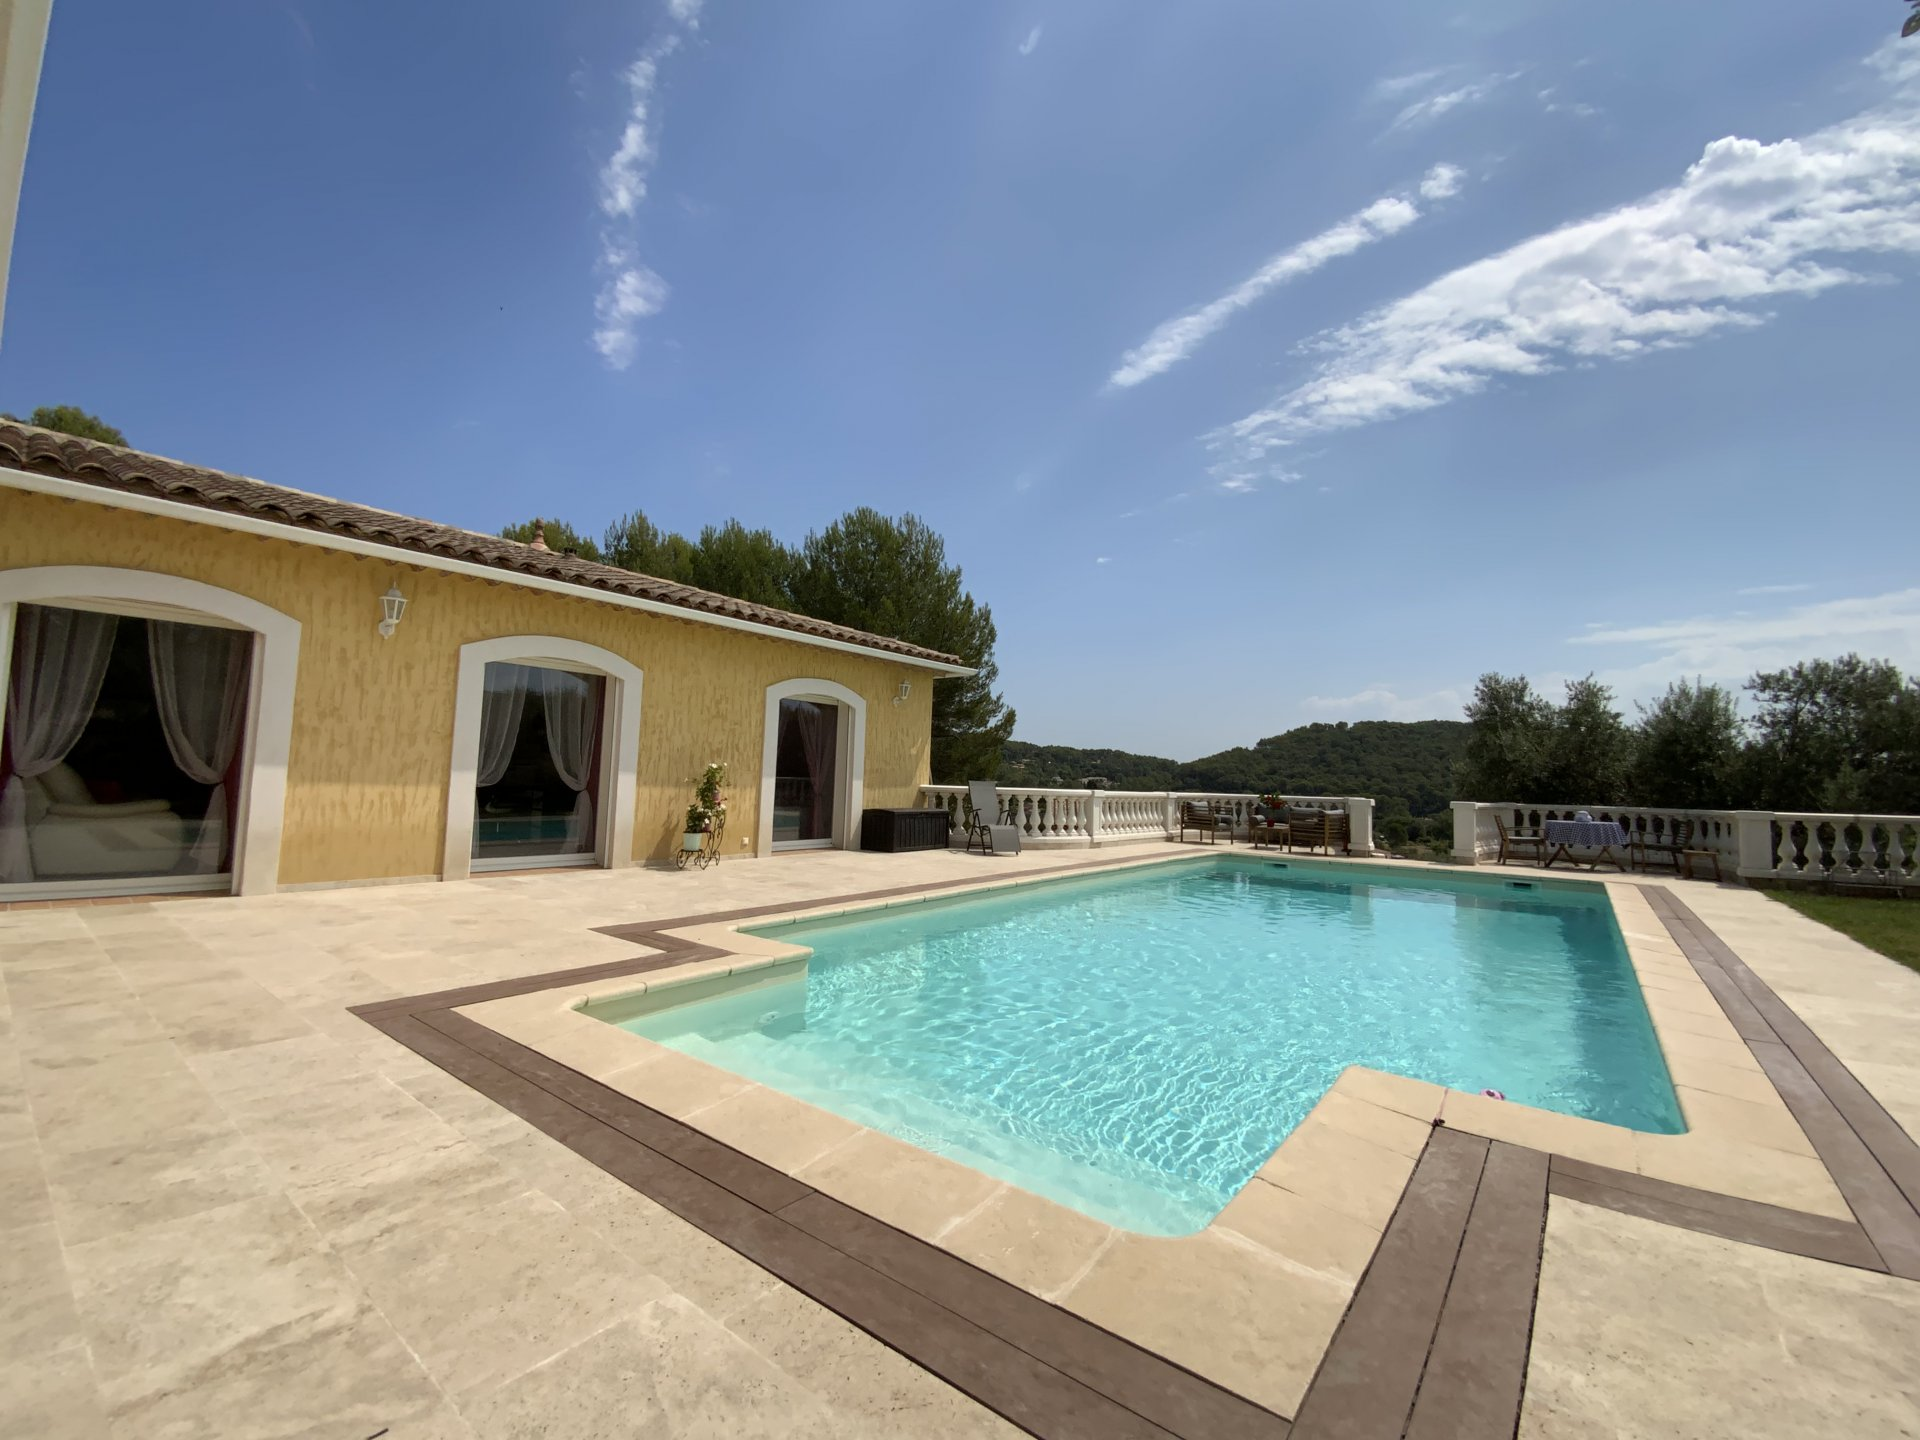 Modern single storey villa with swimming pool and outbuilding